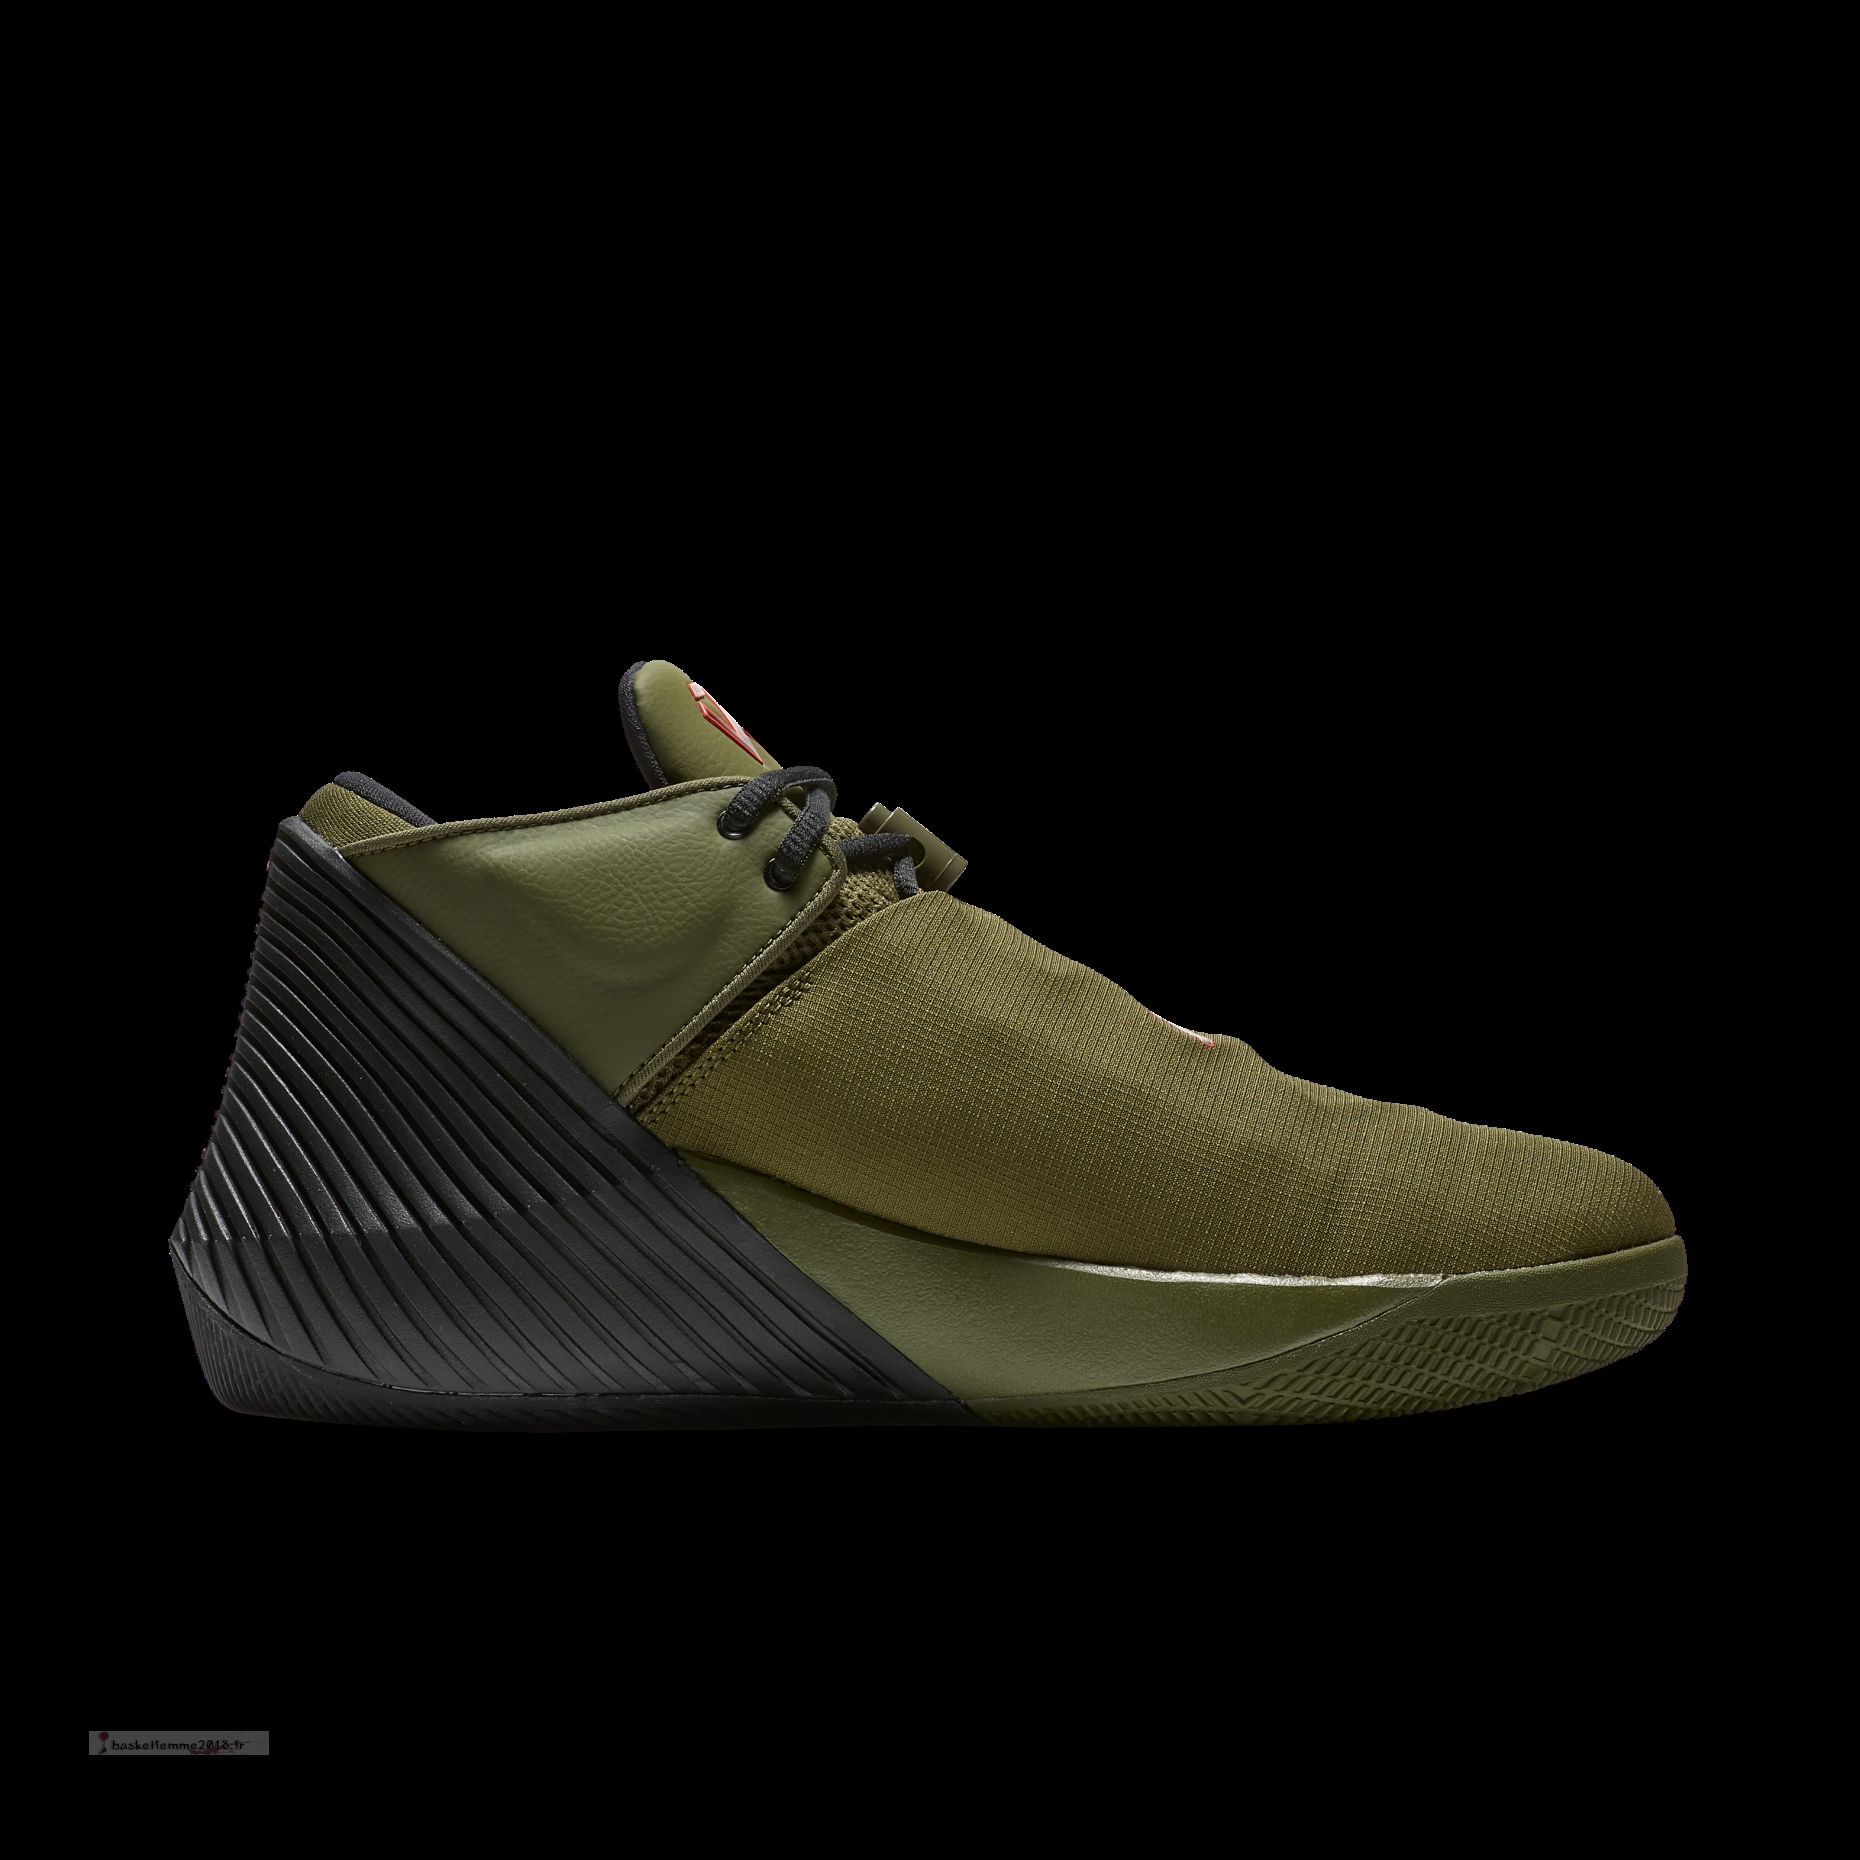 Jordan Why Not Zer0.1 Low Pfx Olive (ar0346-300) Chaussure de Basket